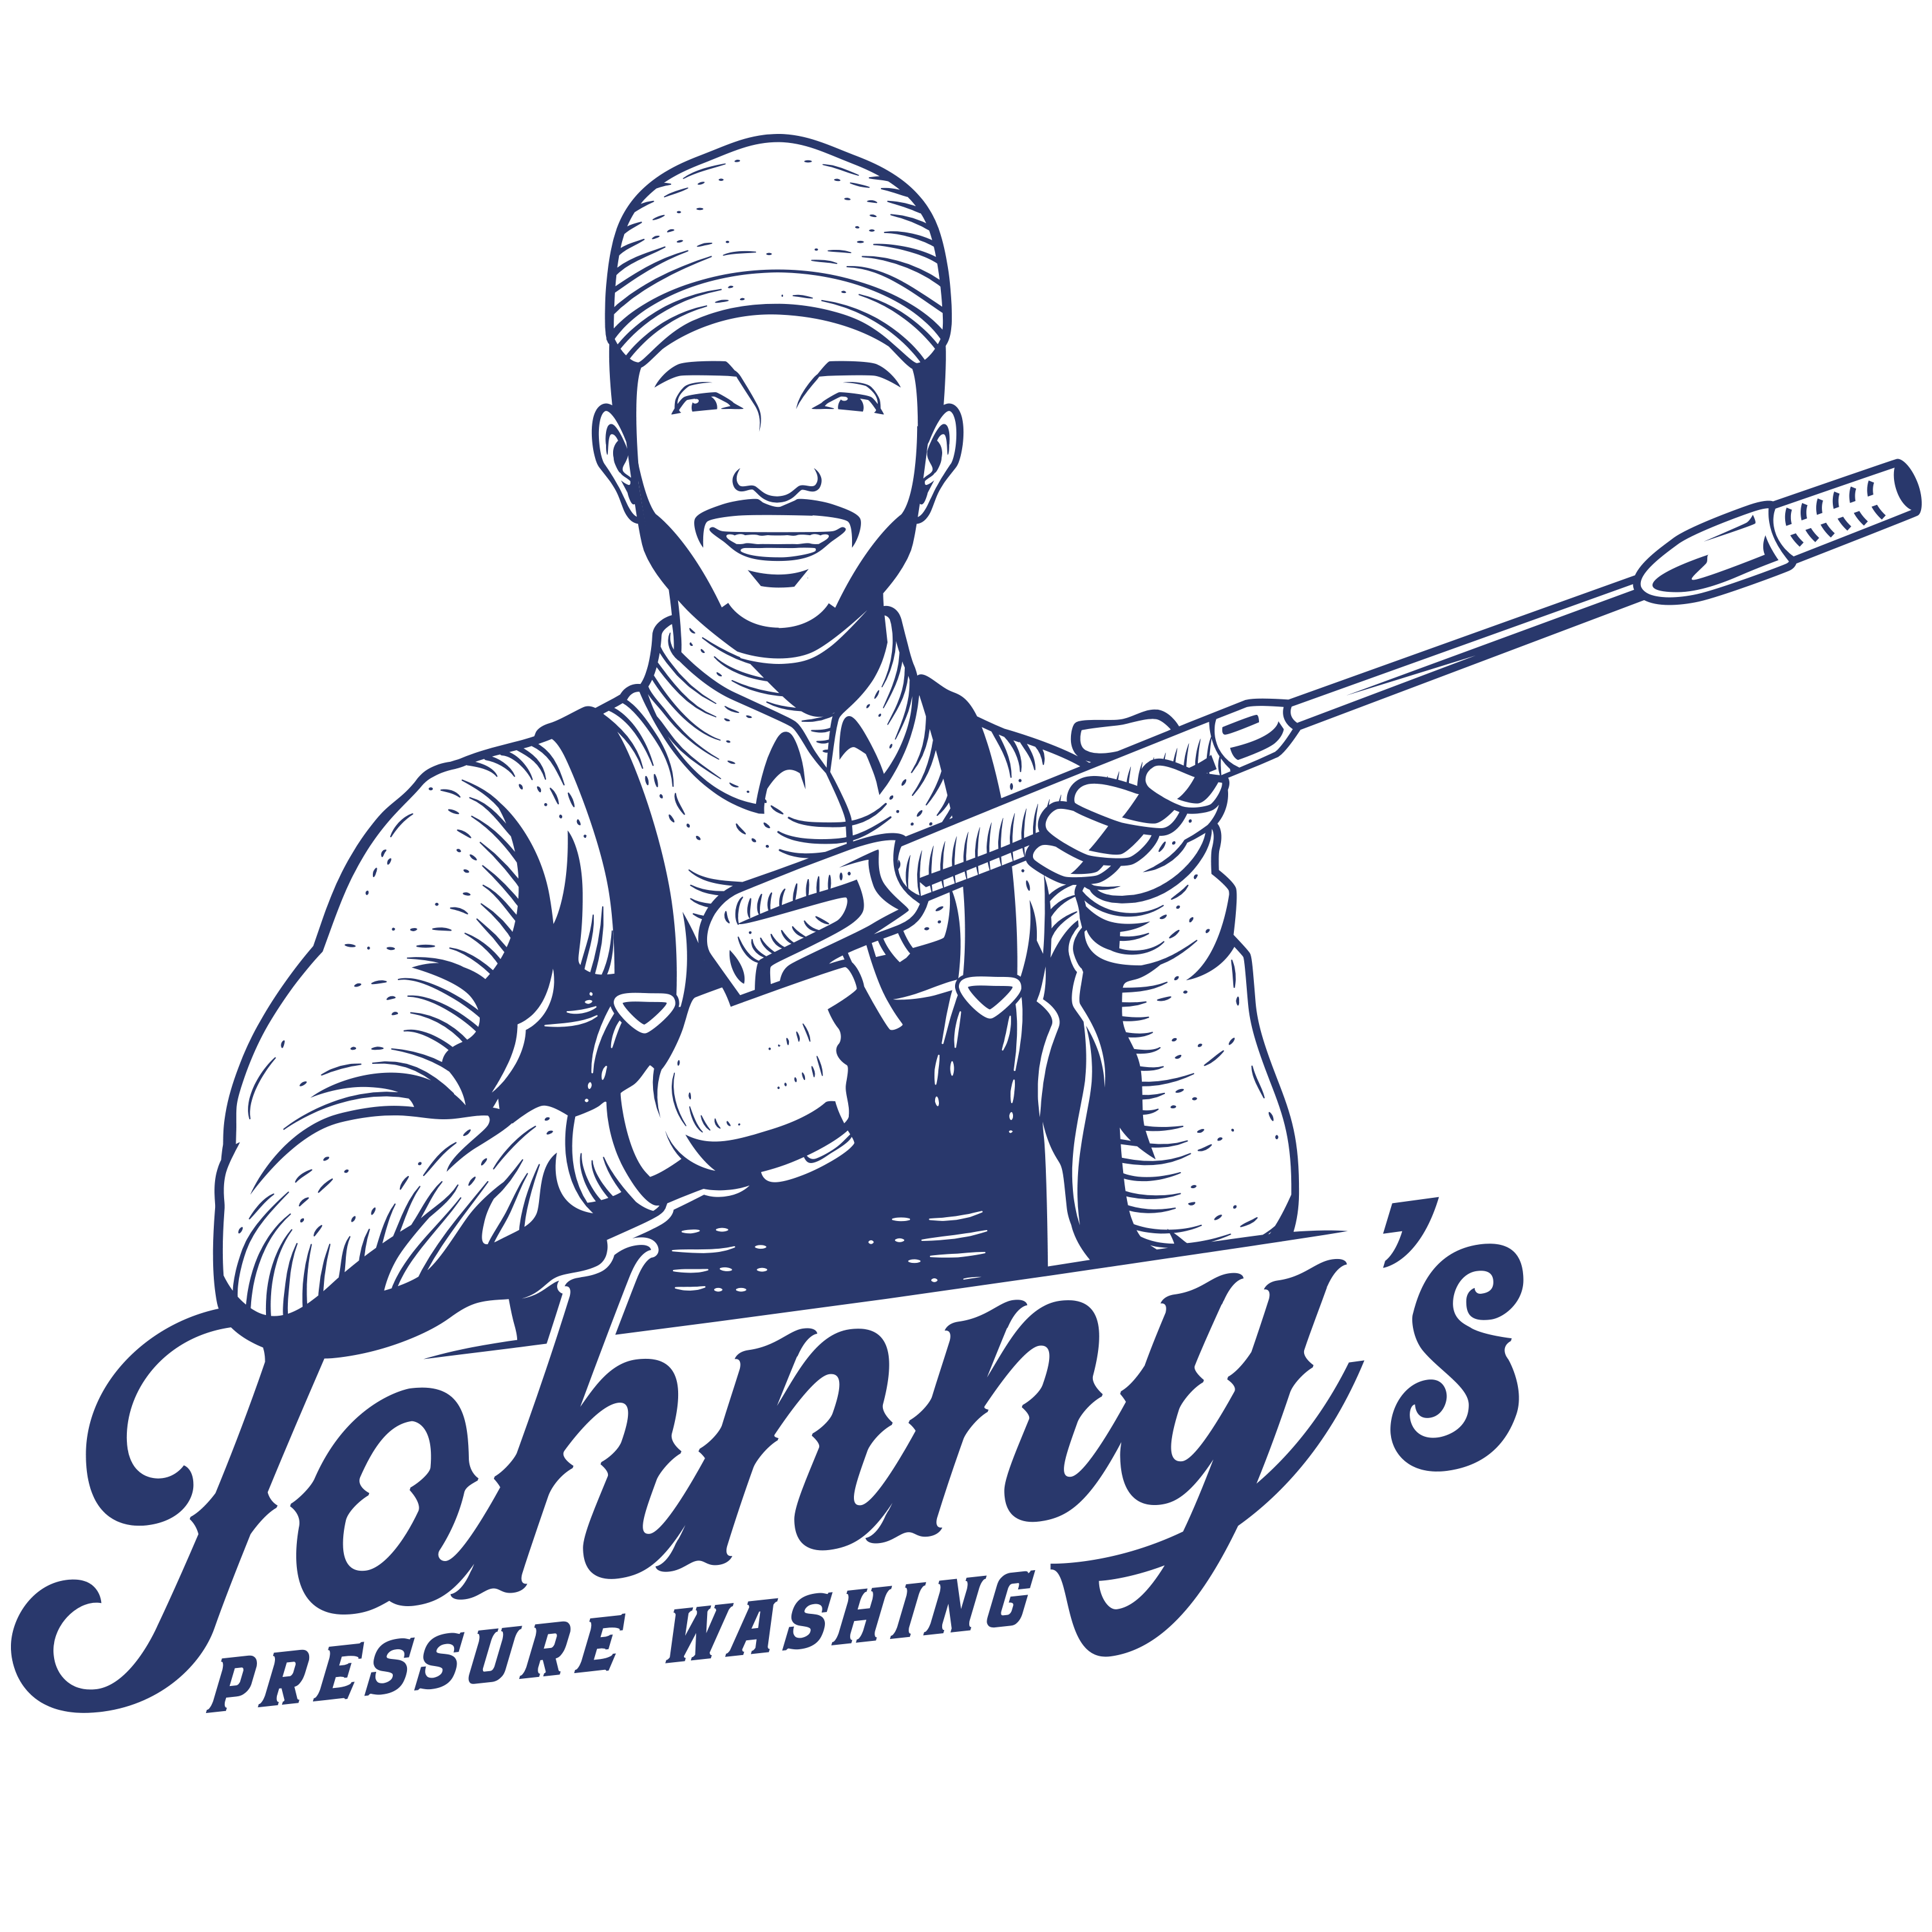 Johnny's Pressure Washing Service